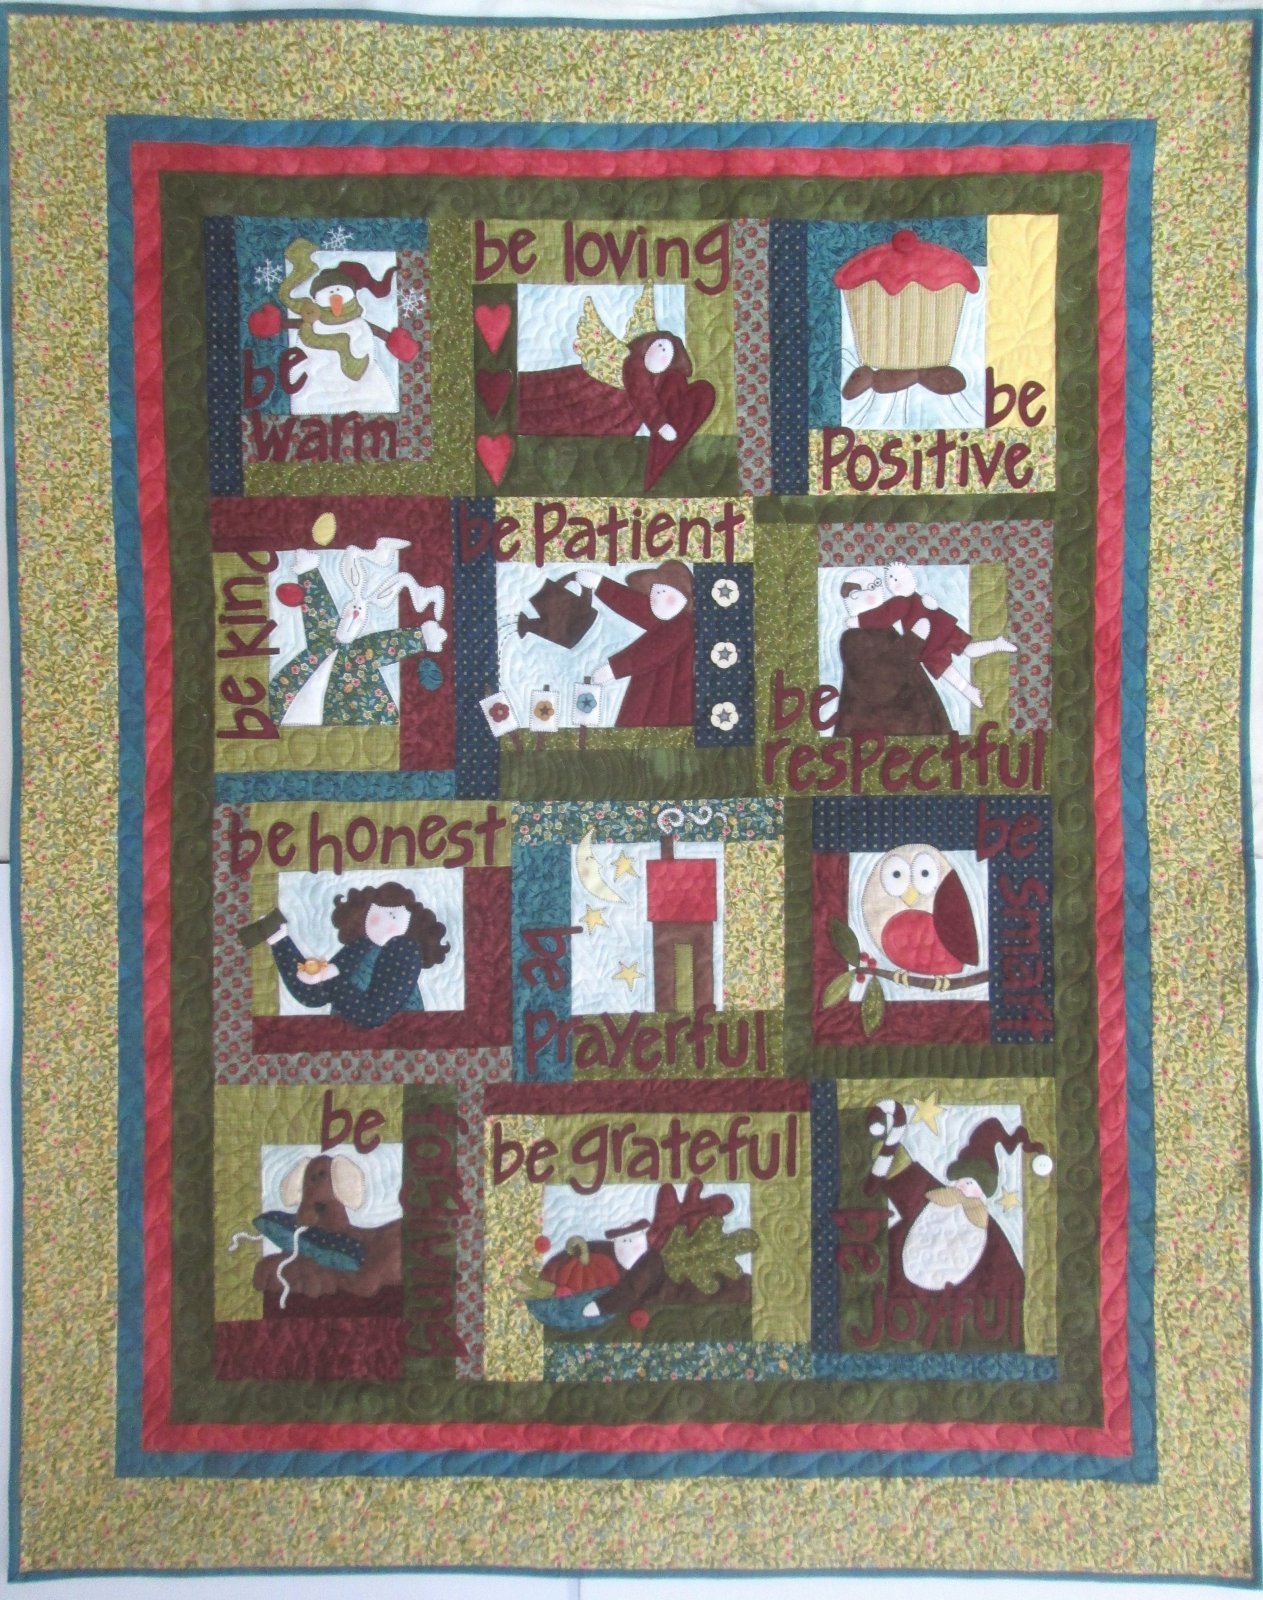 Be Attitudes Quilt Kit includes binding, buttons & book